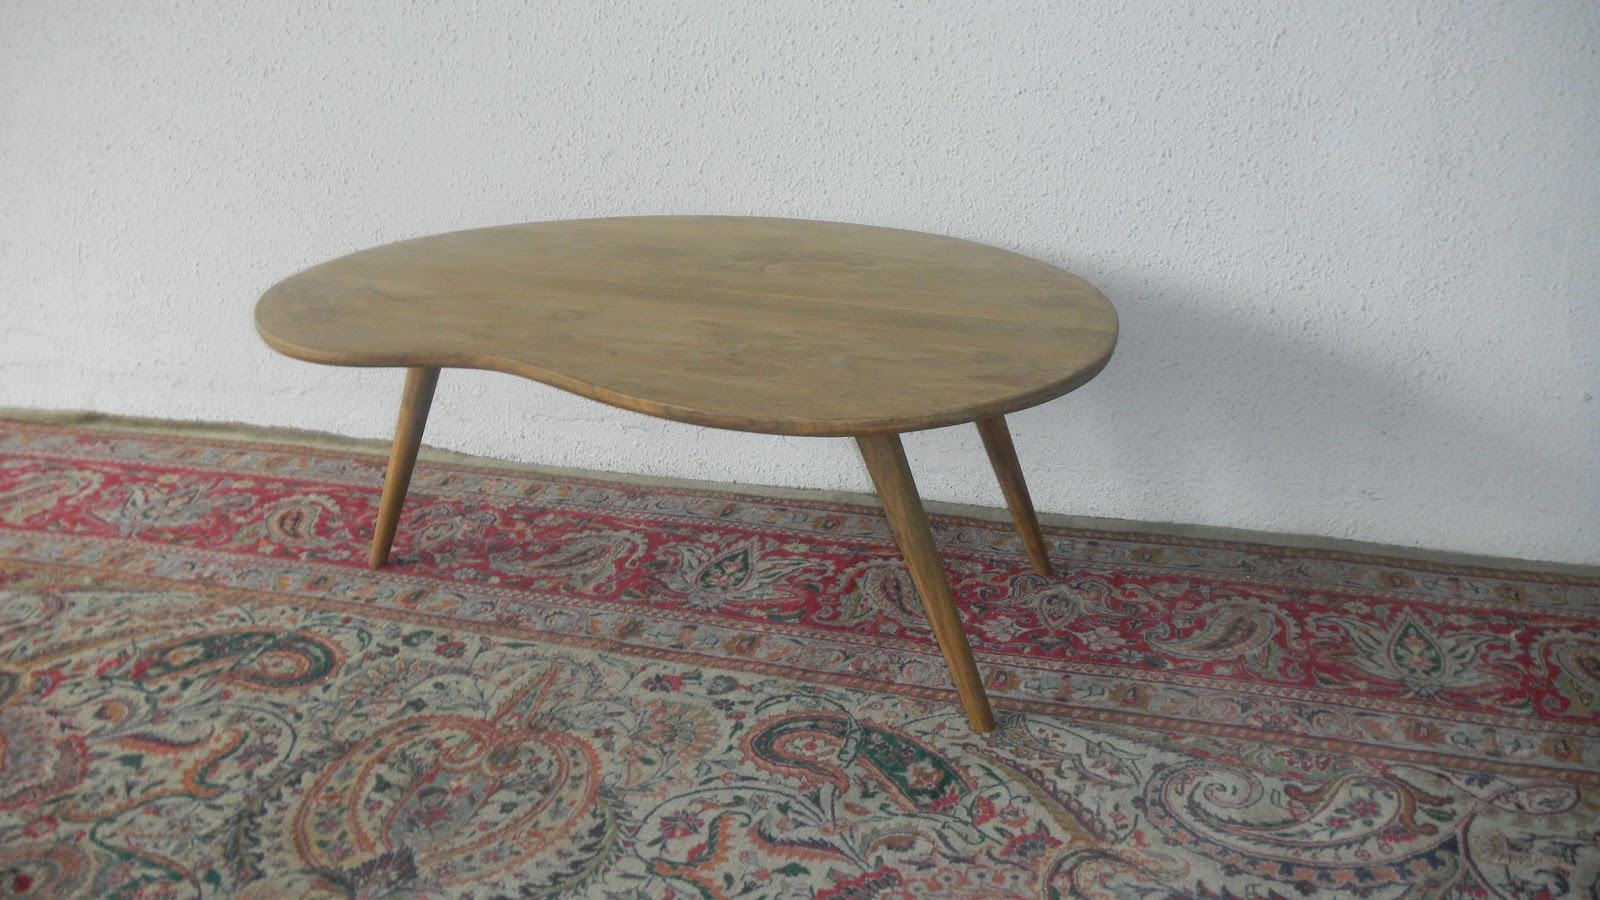 Second charm collections midcentury modern coffee tables slightly lower than normal coffee table height 450 geotapseo Images